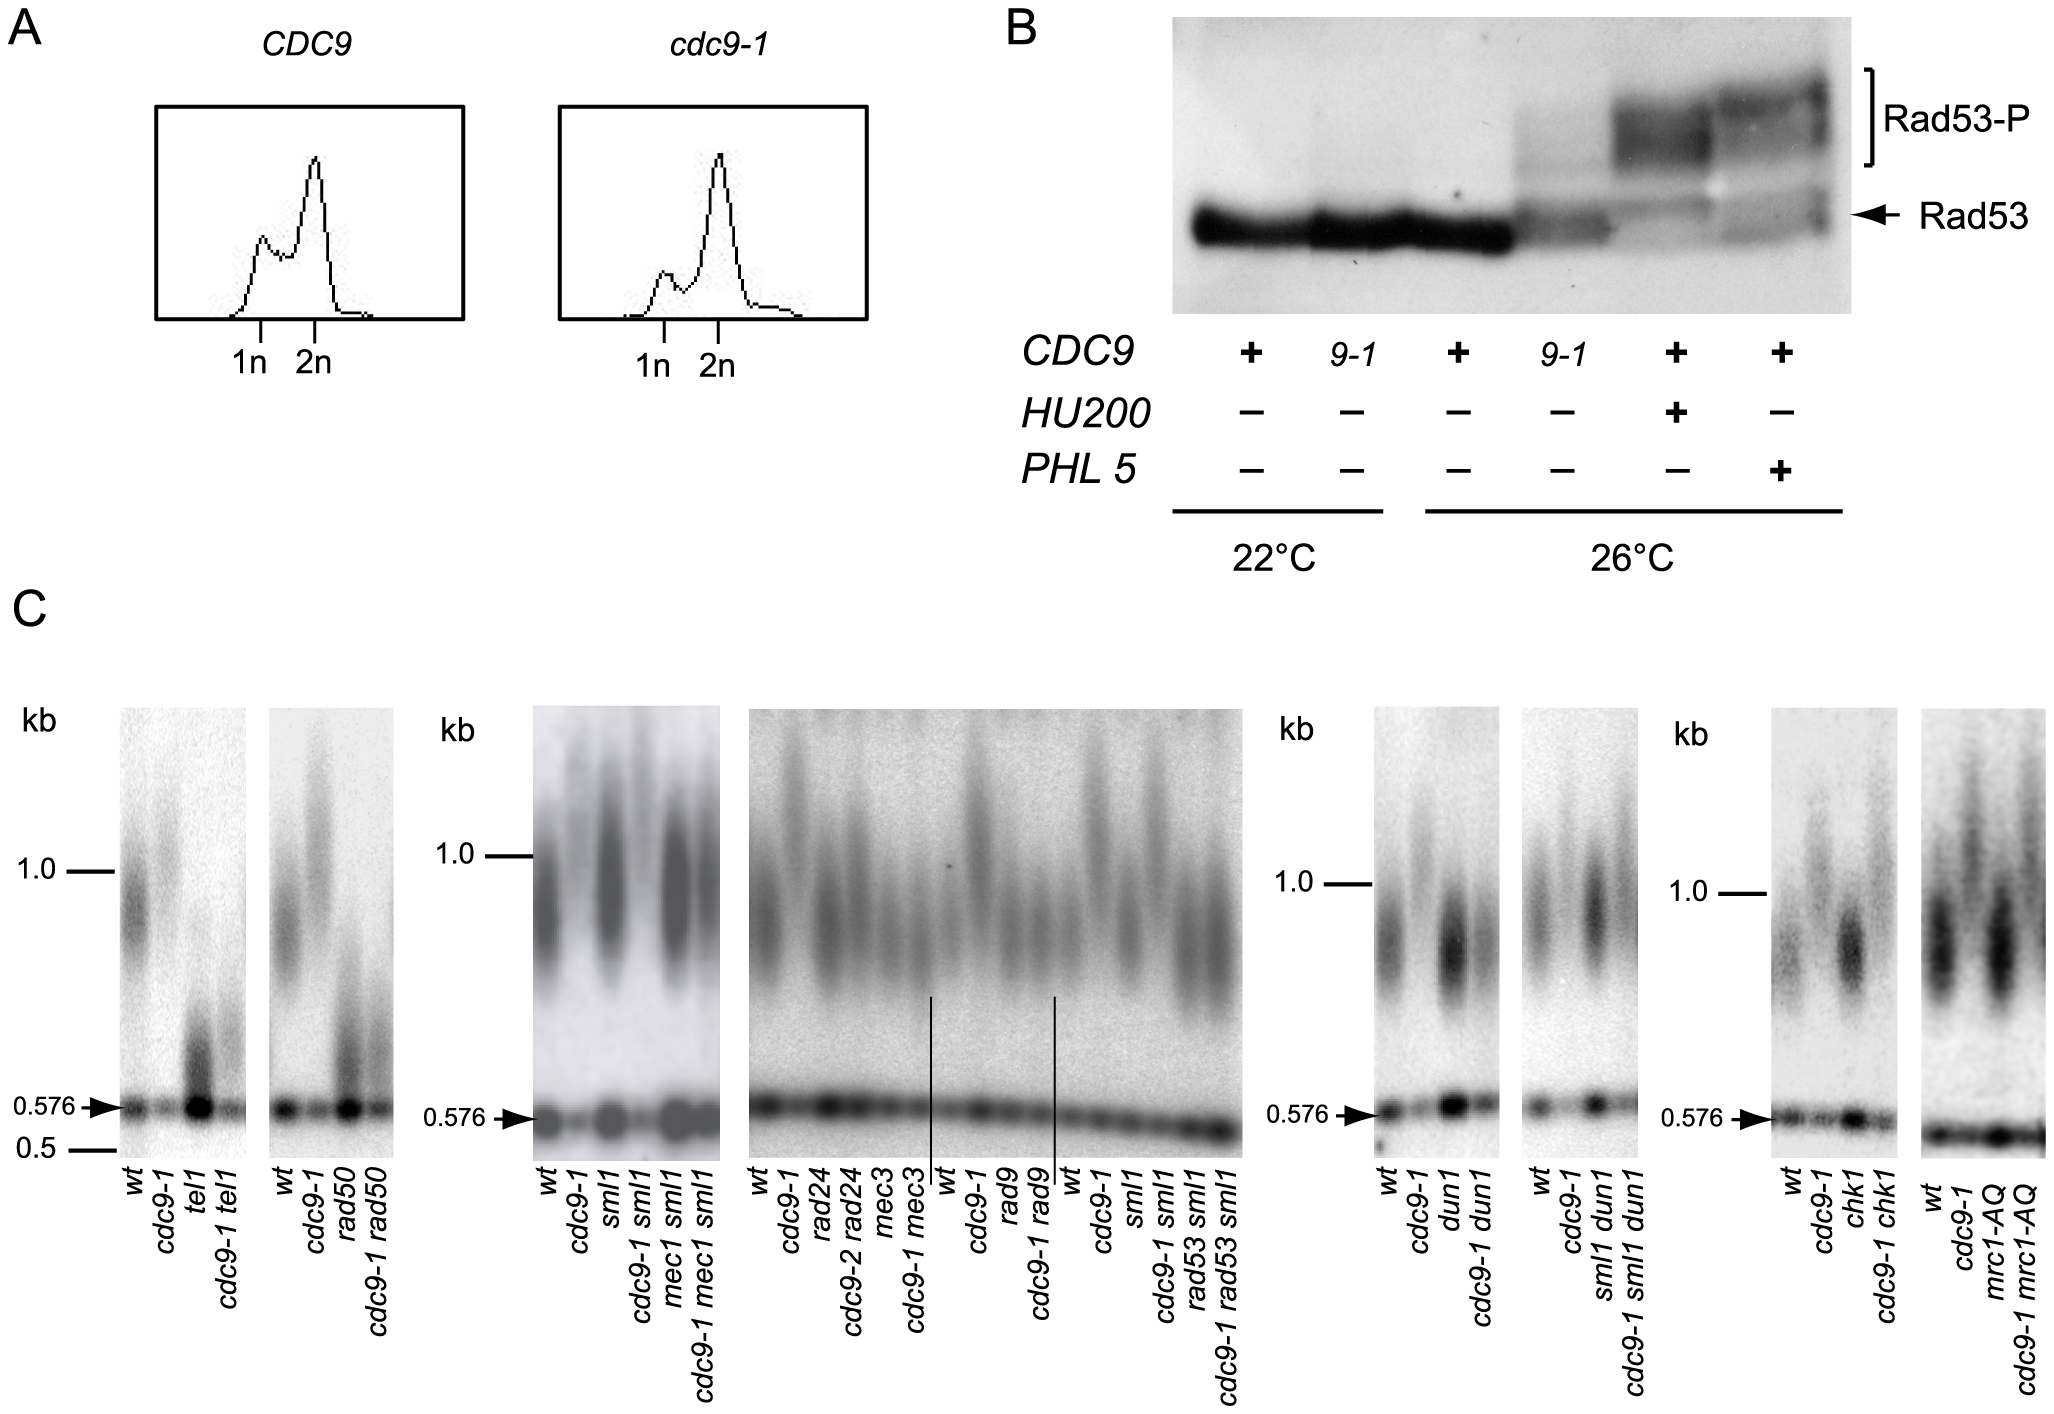 Activation of the DNA damage checkpoint occurs in <i>cdc9-1</i> cells at 26°C and is required for their telomere length phenotype.